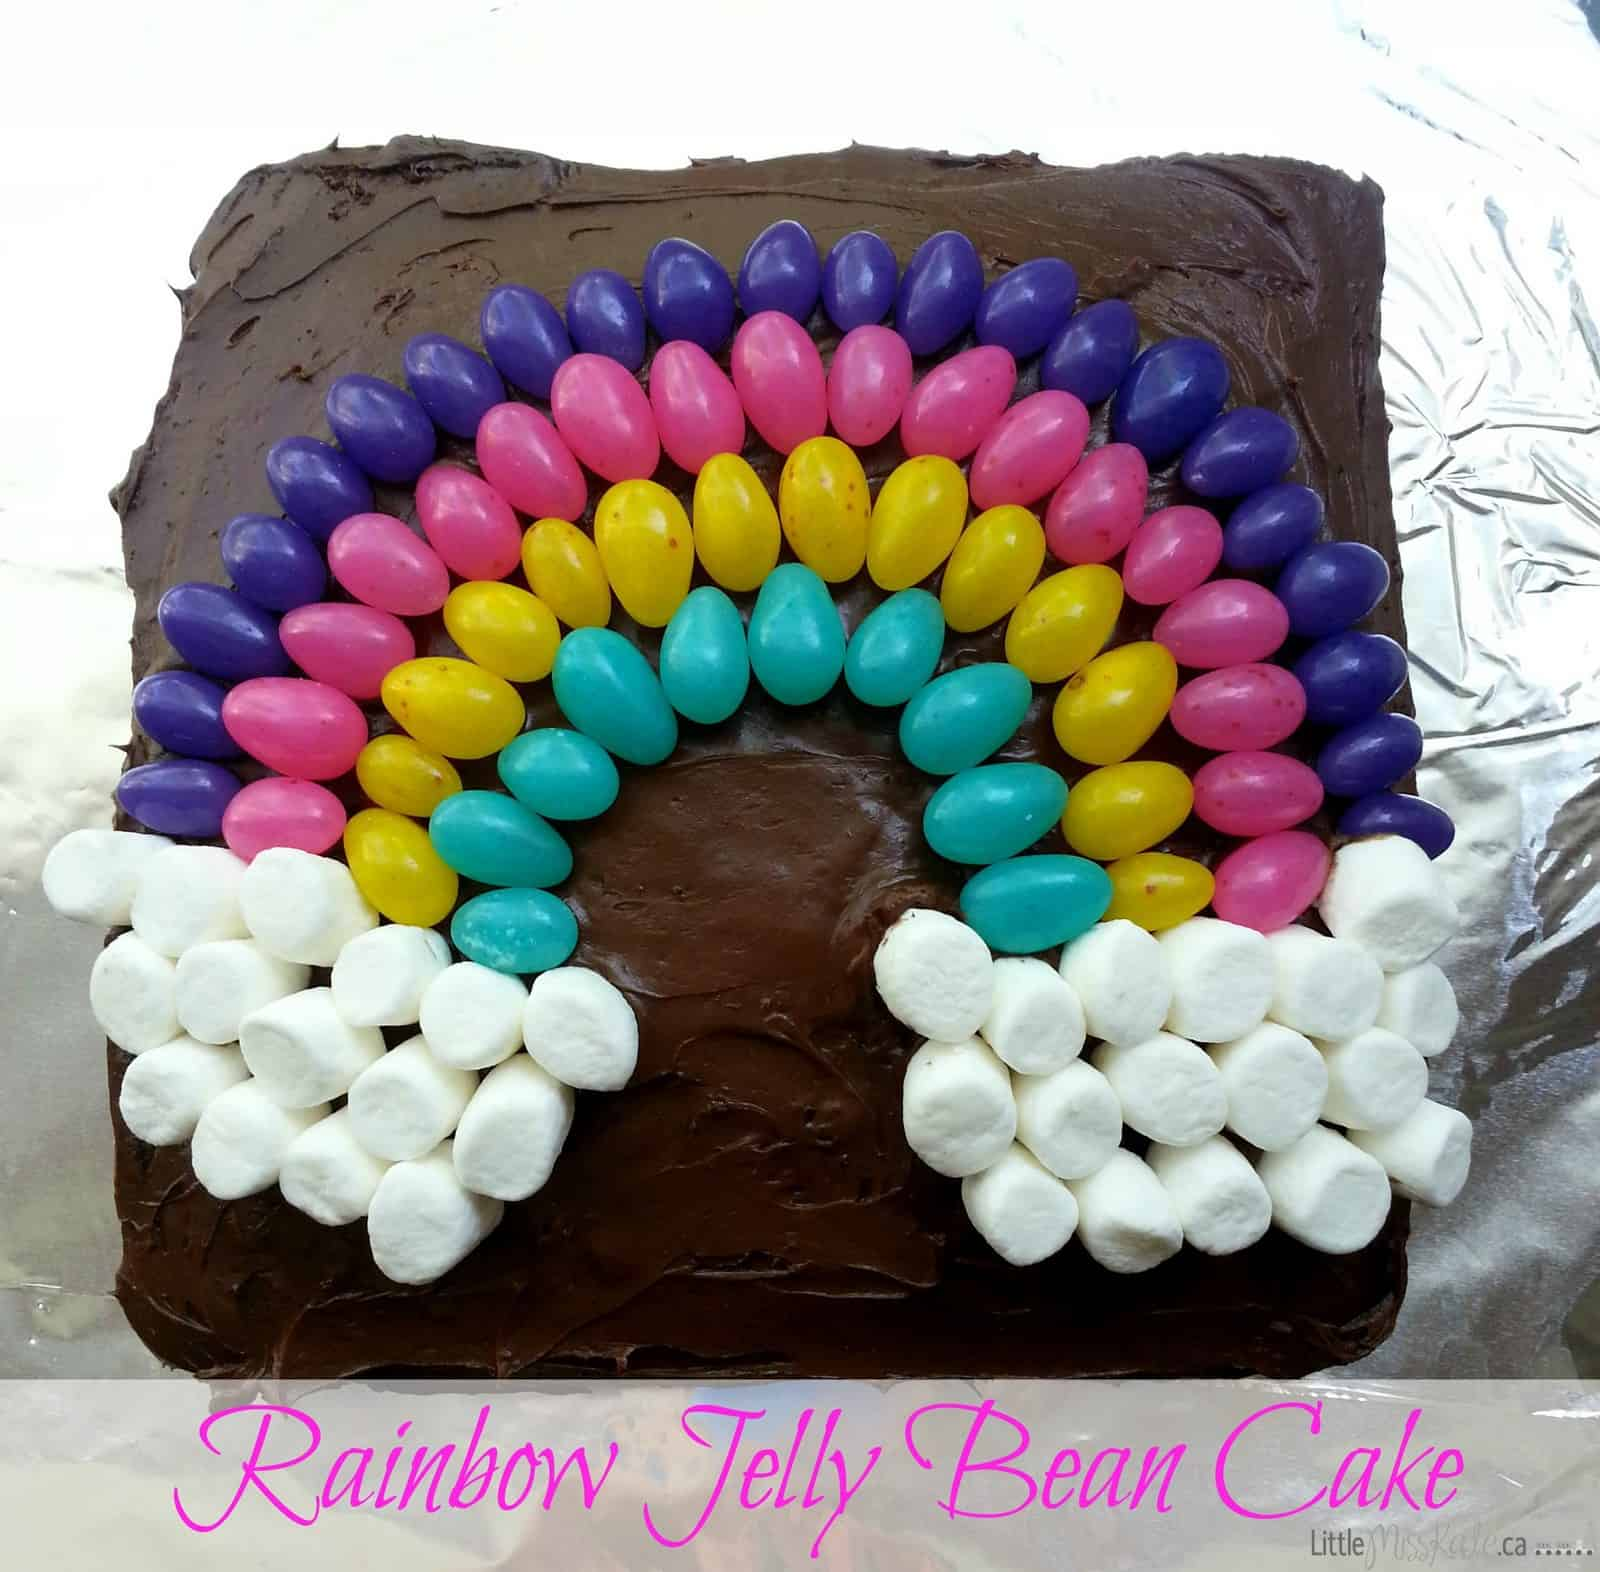 Easy Cake Decorating Idea Jelly Bean Rainbow Cake Little Miss Kate - Homemade cake decorating ideas